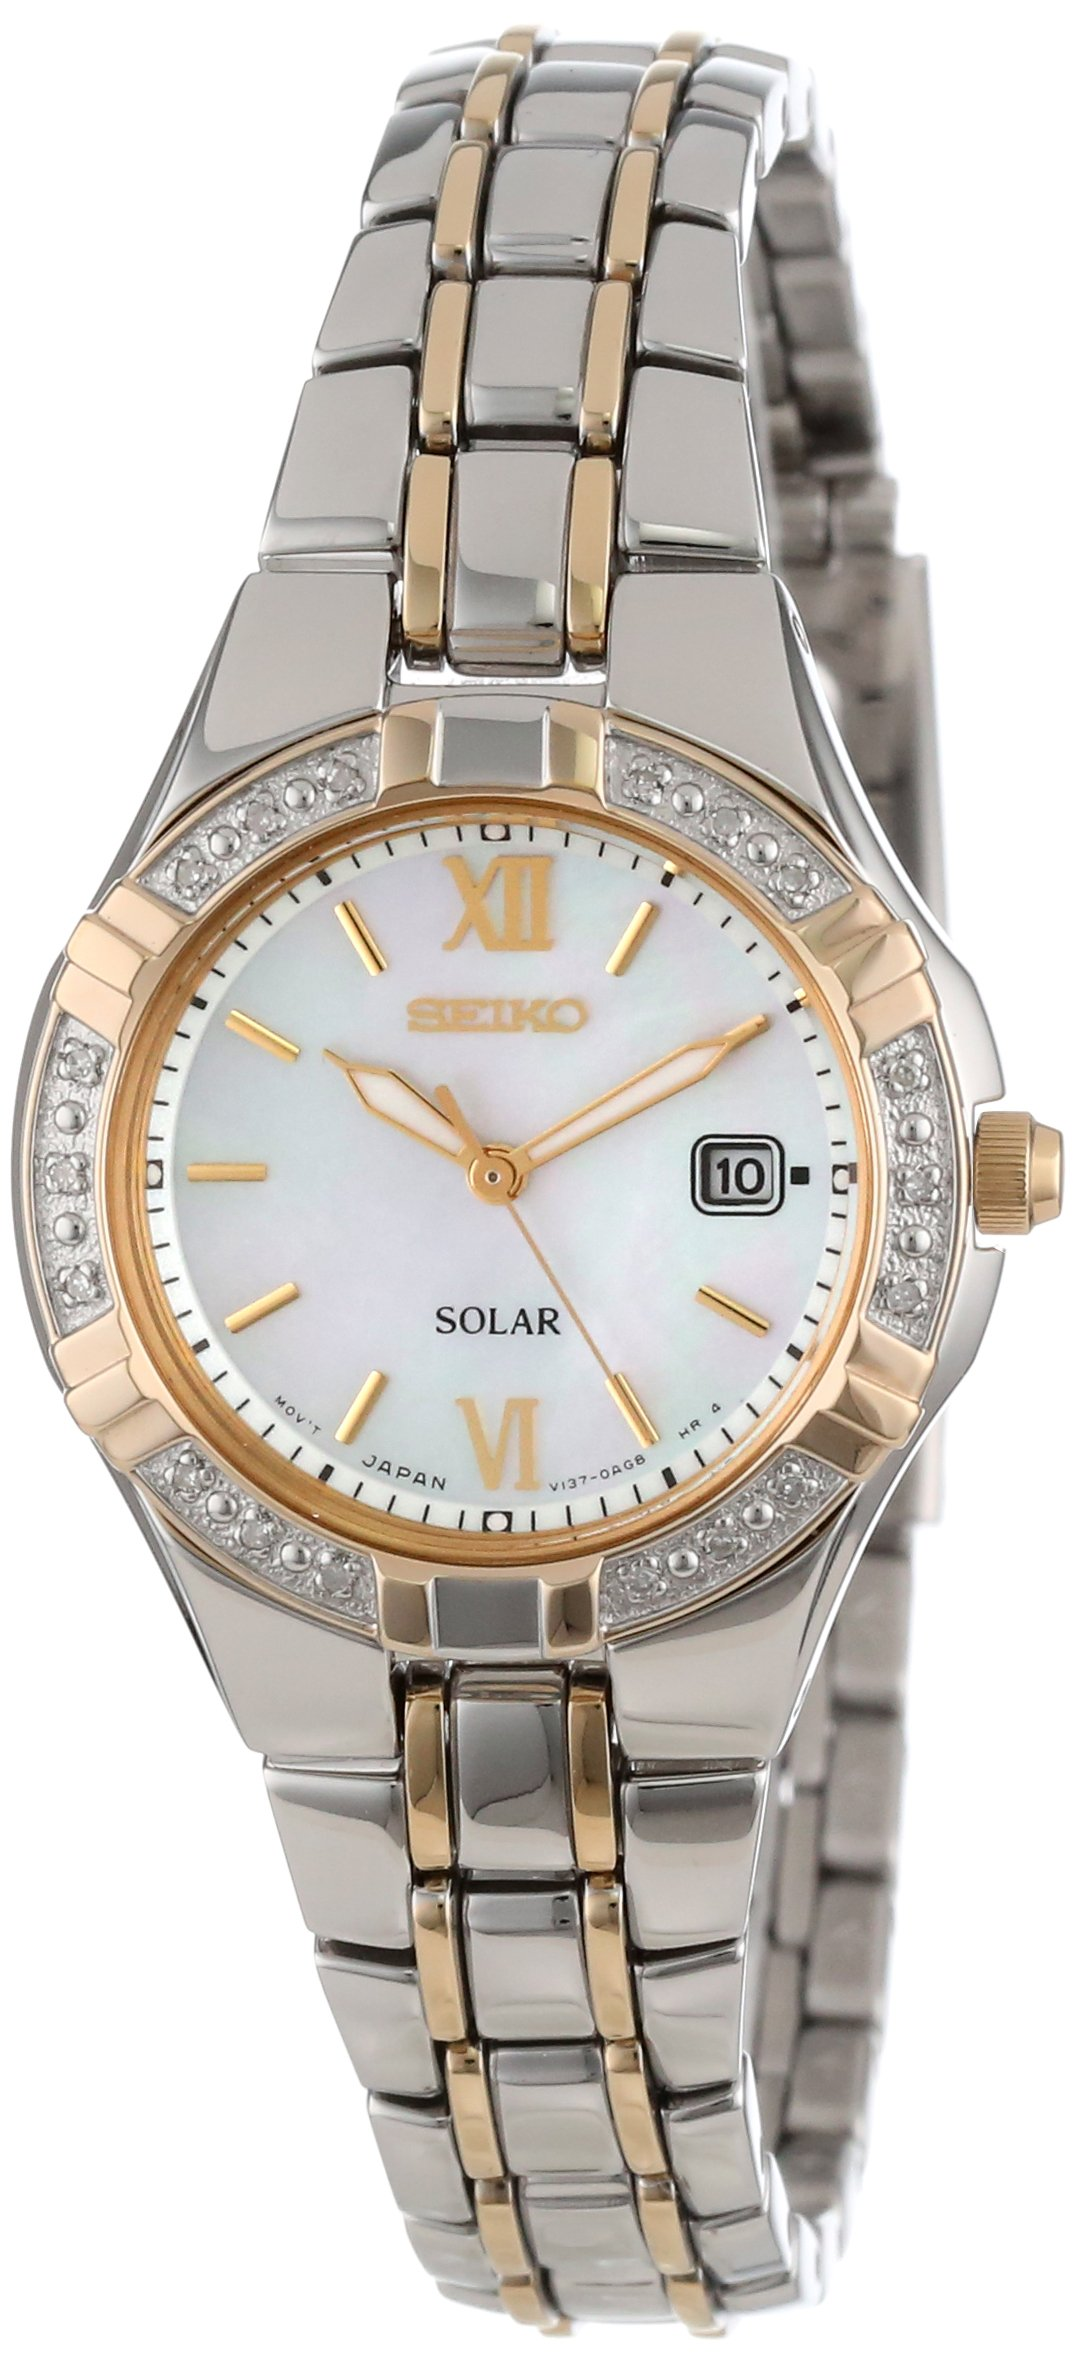 Seiko Women's SUT068 Dress Solar Classic Diamond-Accented Two-Tone Stainless Steel Watch by Seiko